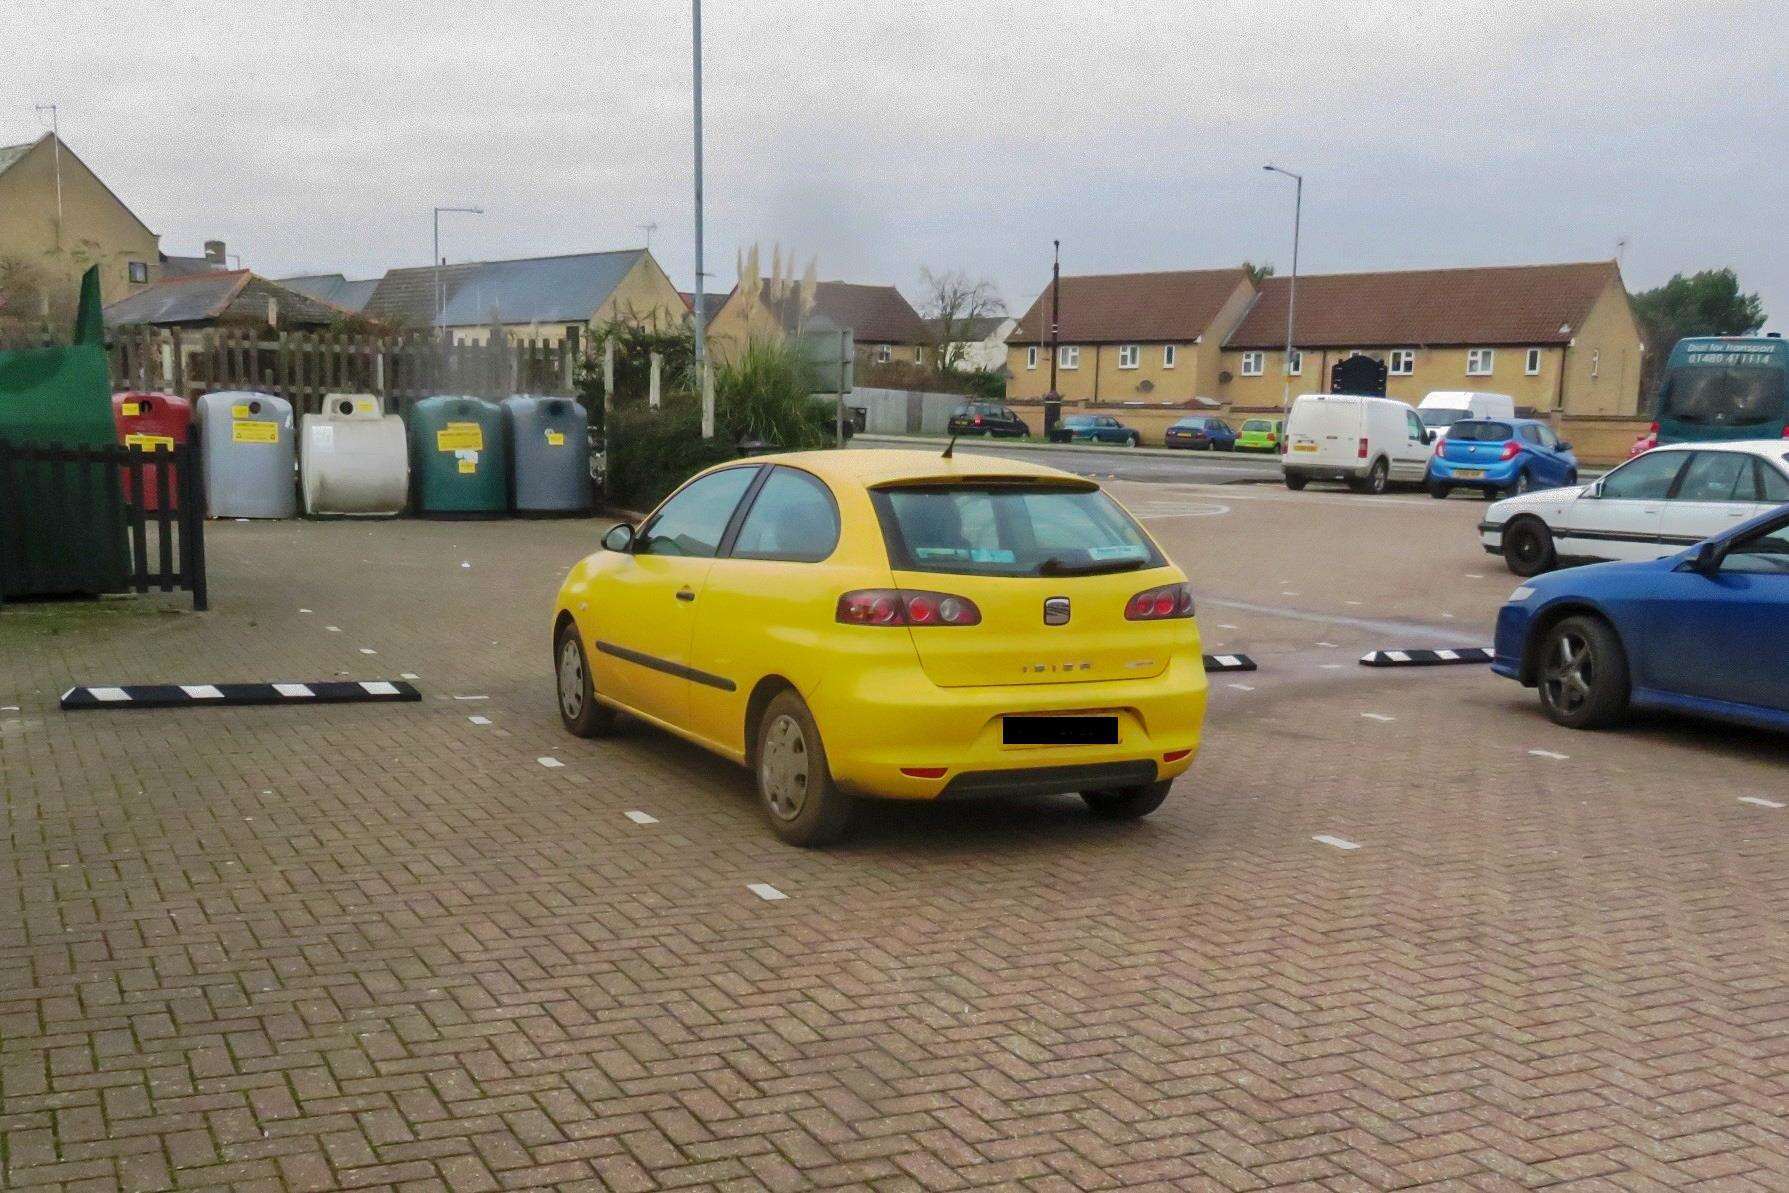 Action to curb anti-social behaviour in Chatteris car park. (6426268)